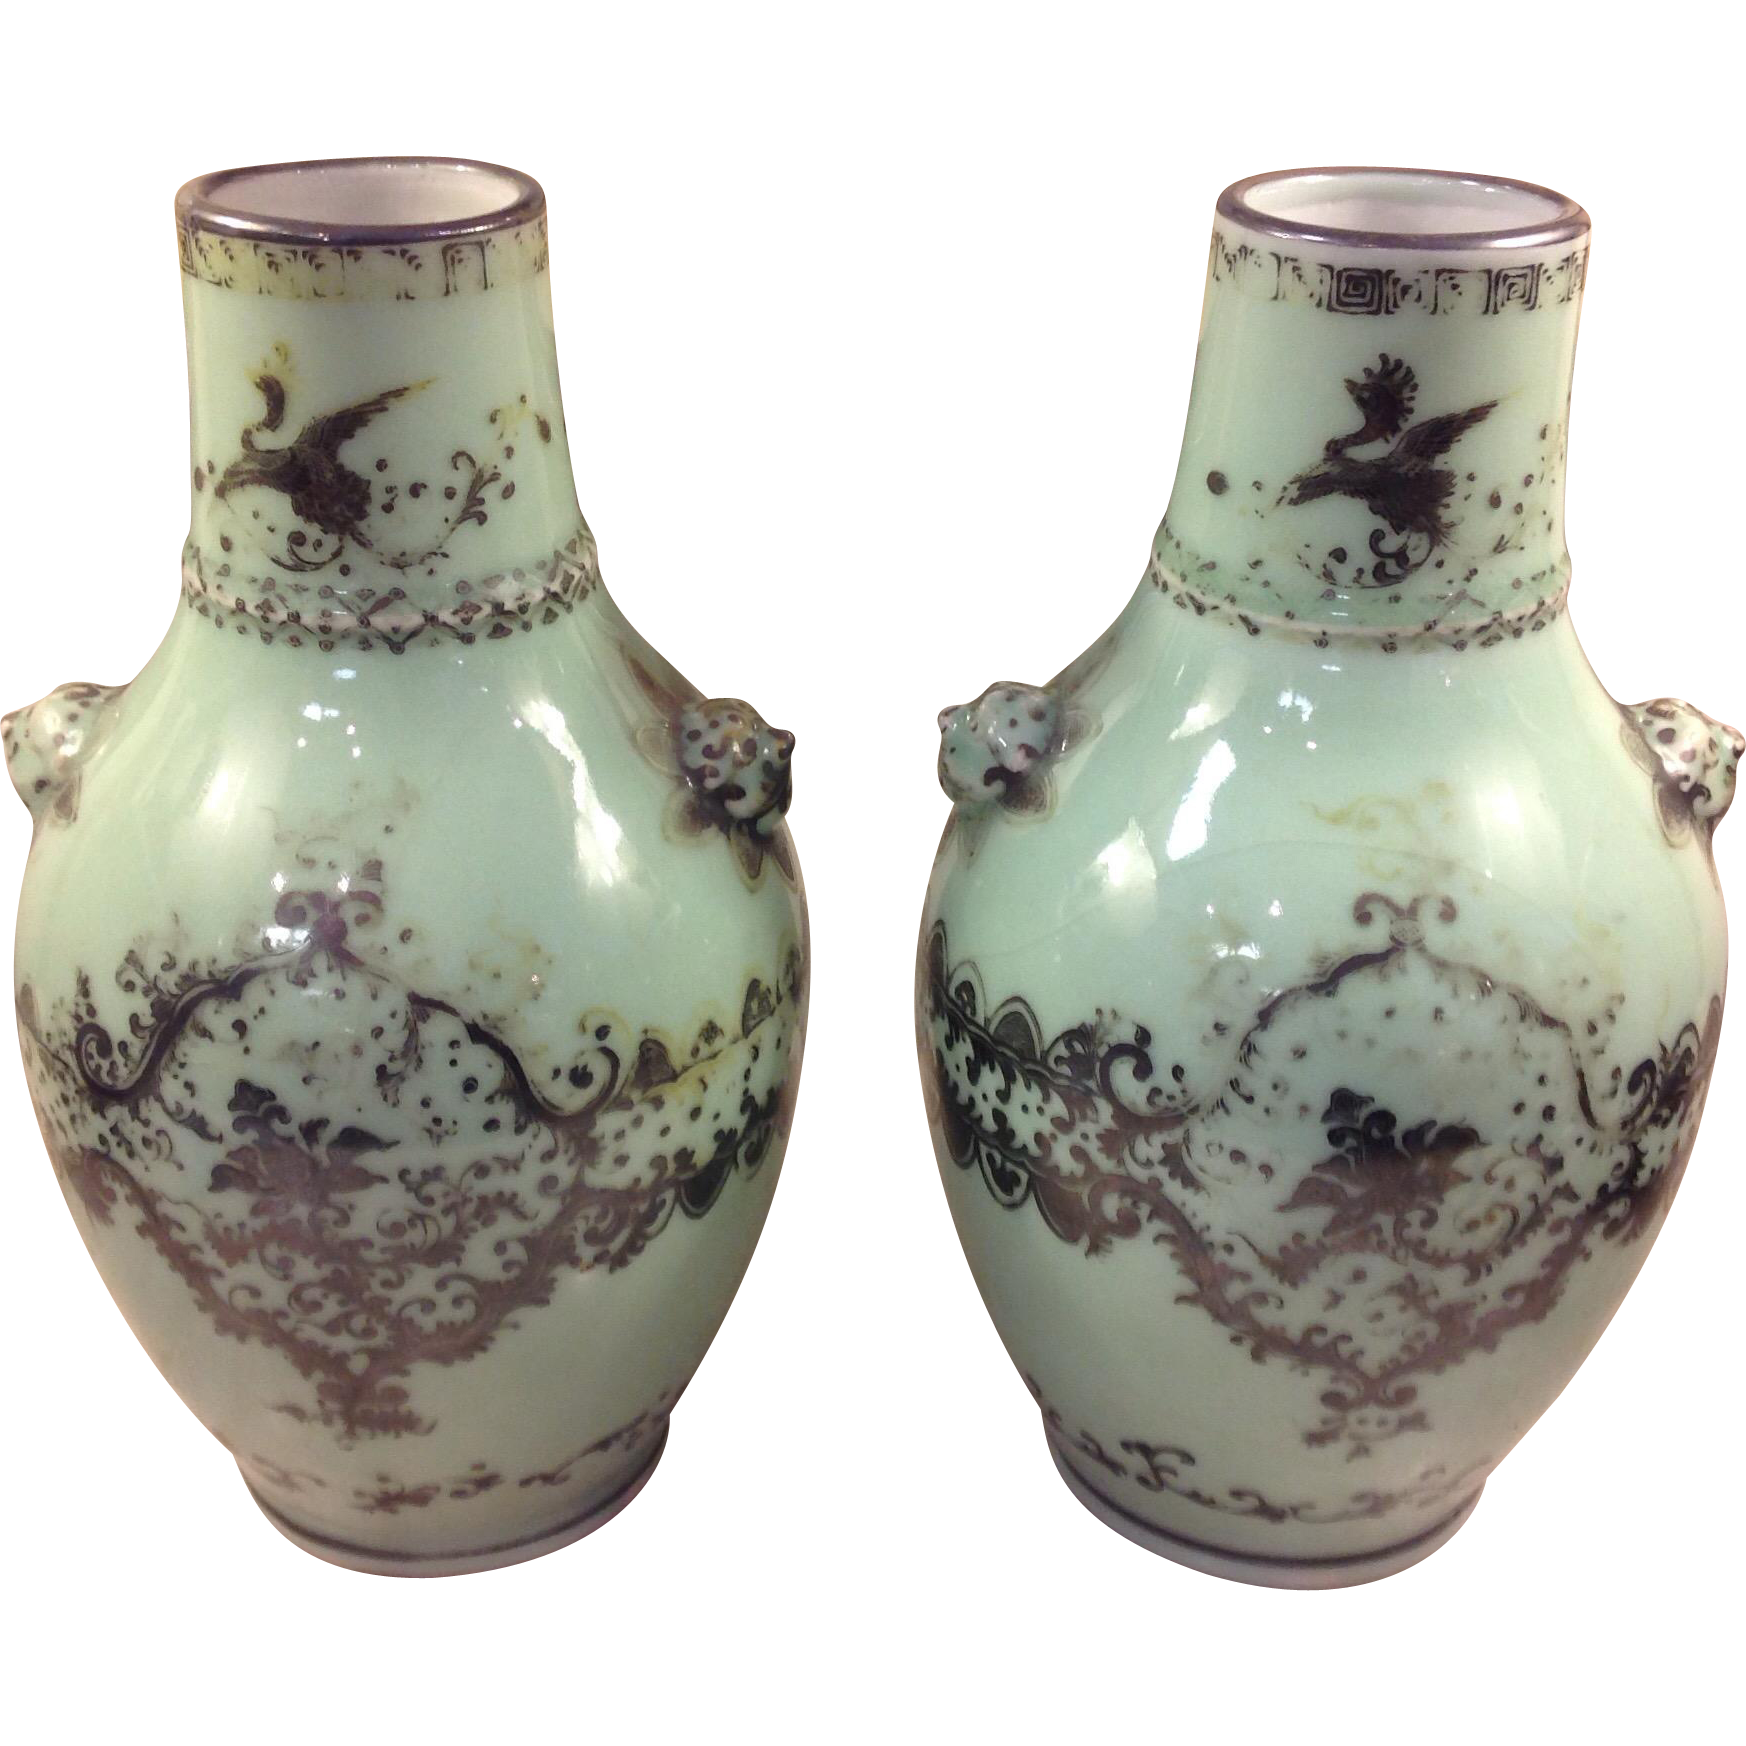 Antique 19th cen. Chinese Vases in Rare Celadon Green color